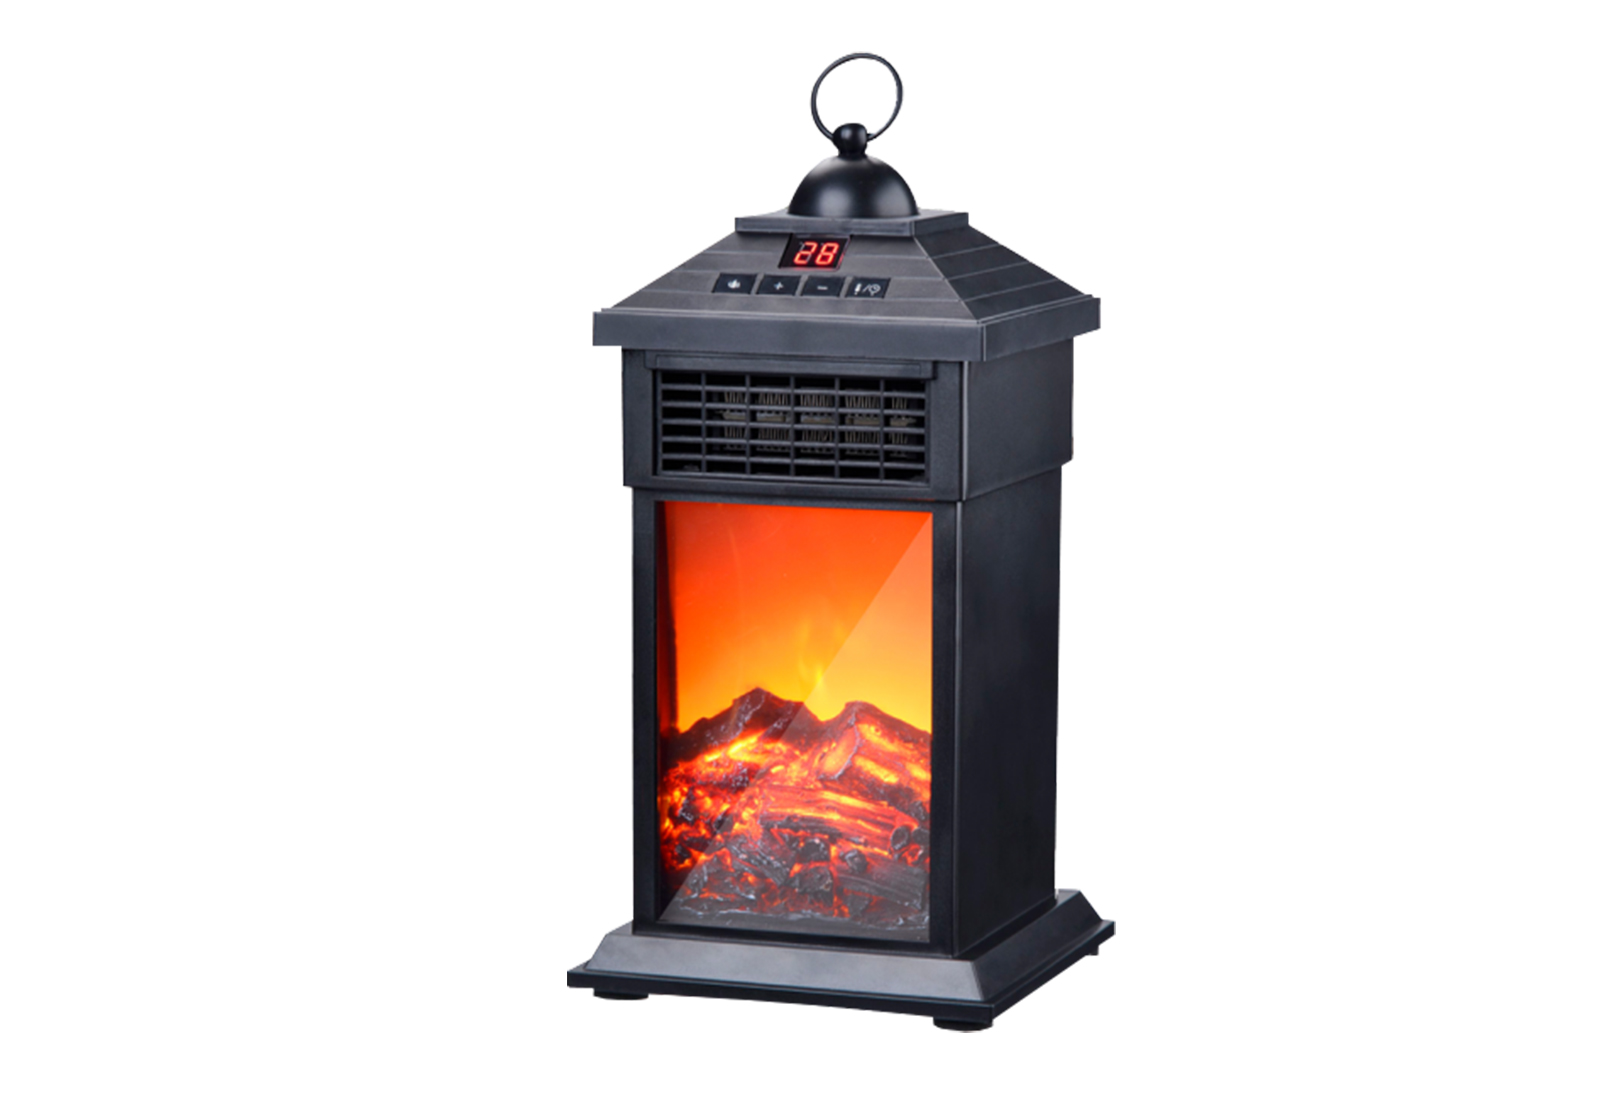 Personal Fireplace Heater Product Image